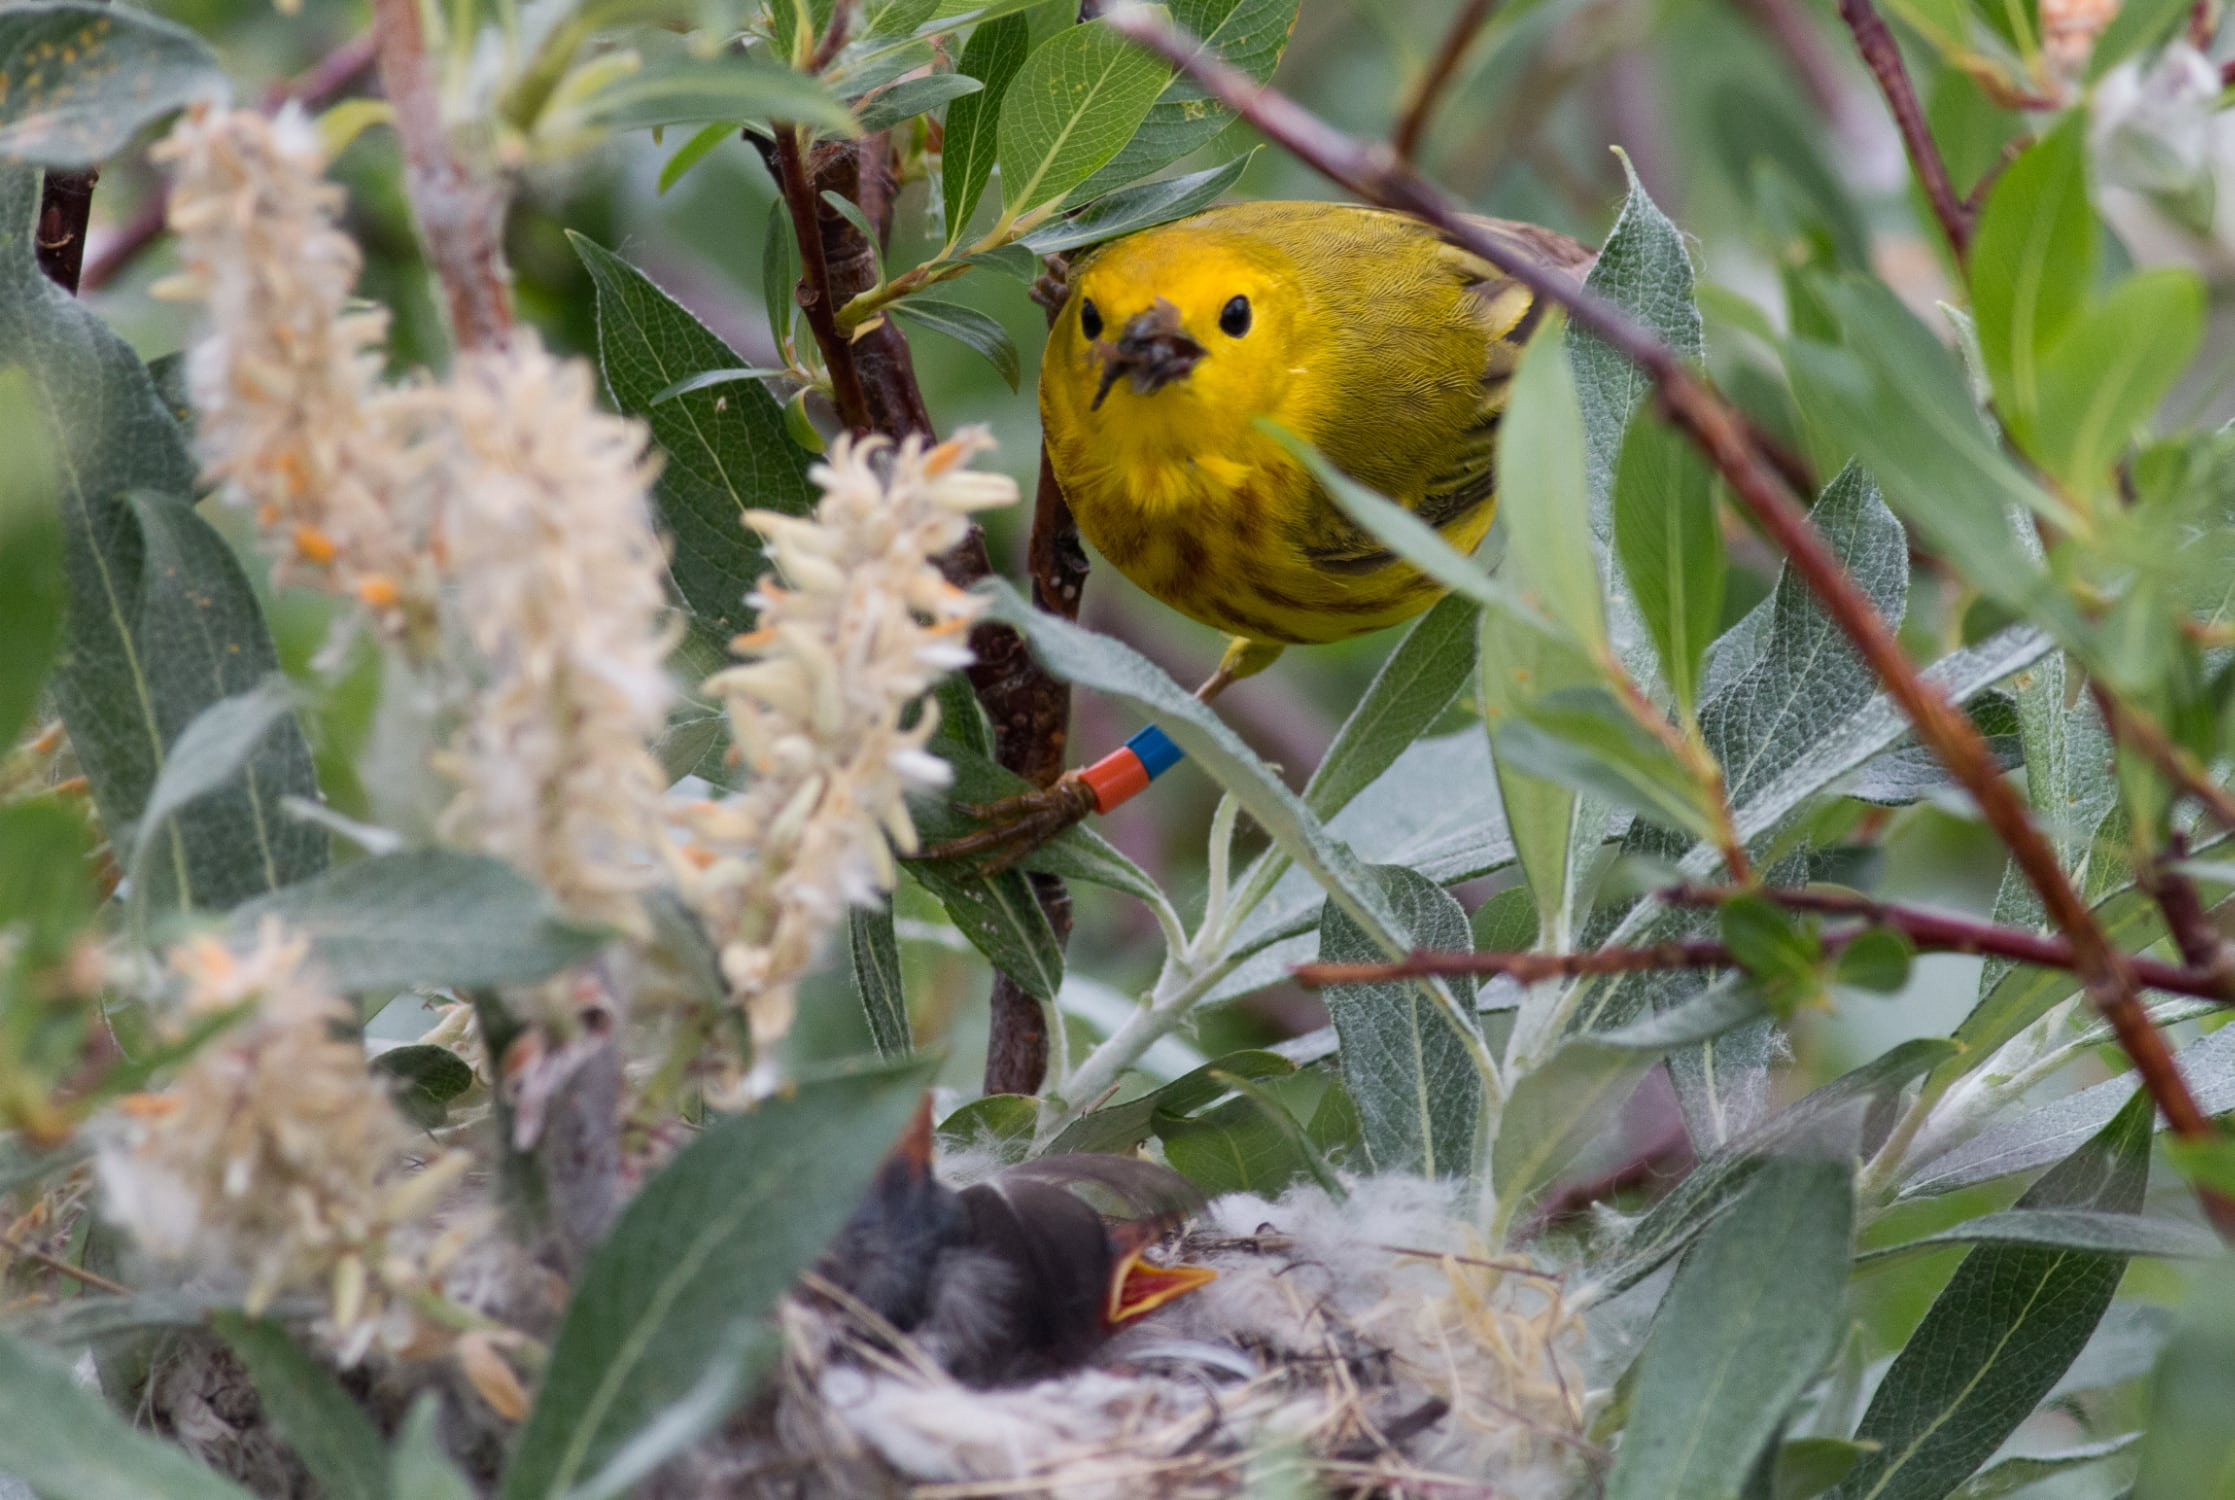 a yellow warbler tends to her young